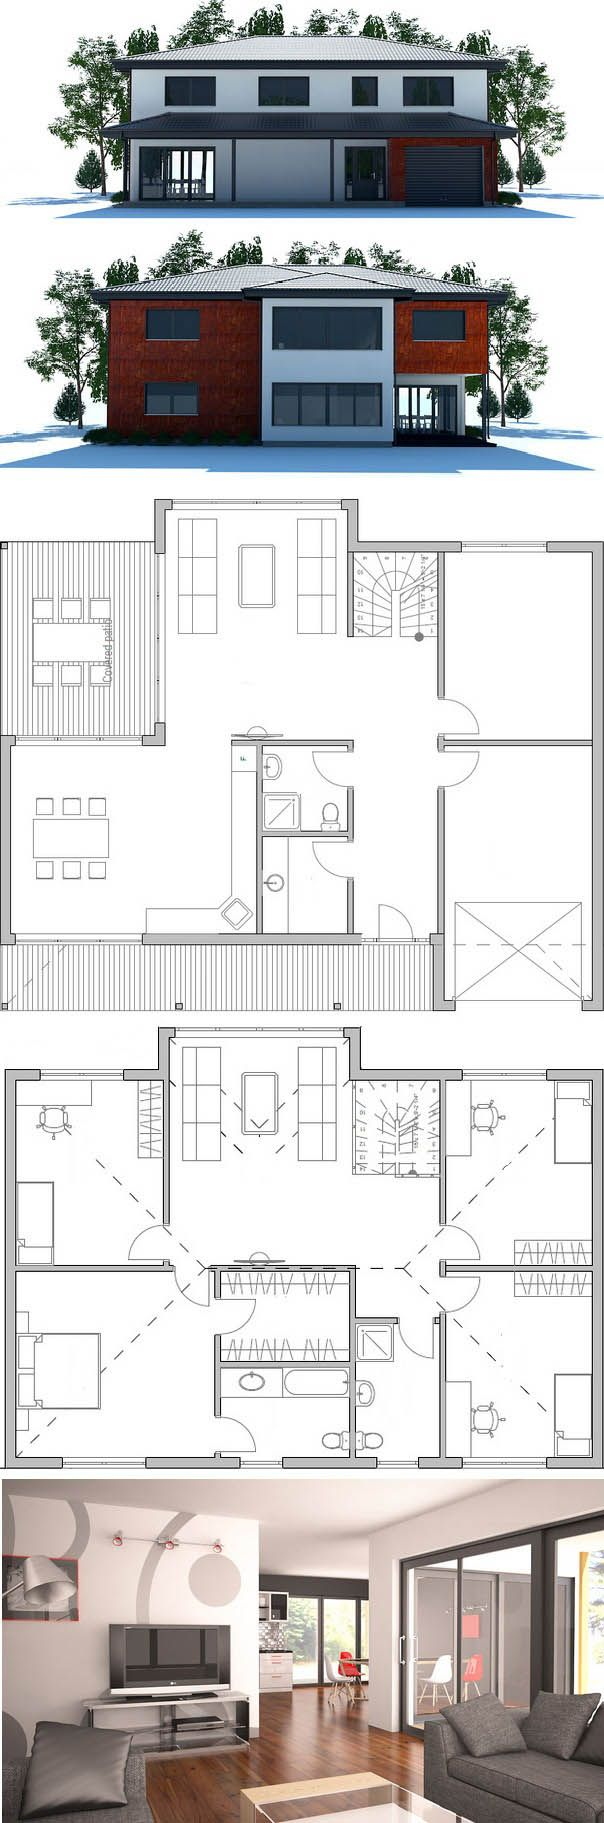 1000+ images about Floor Plans on Pinterest Layout, Bath and ... - ^